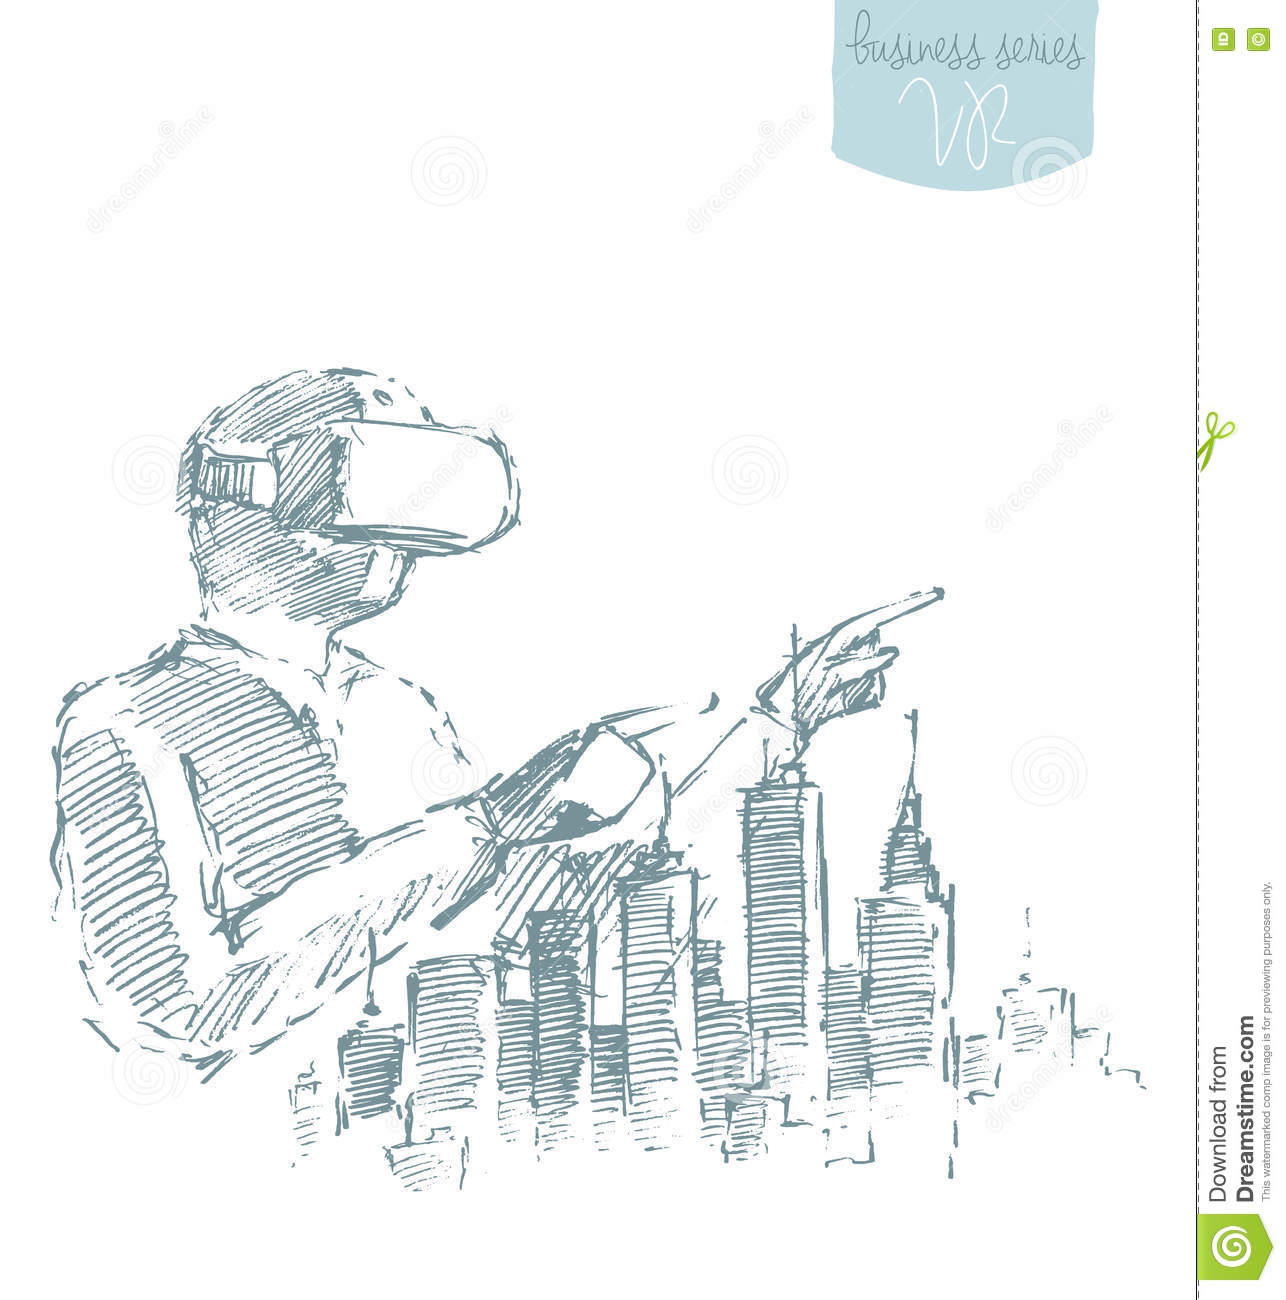 understanding the concepts of virtual reality and simulation Design and evaluation of a virtual reality simulation module for training advanced temporal bone surgery sudanthi wijewickrema, bridget copson, yun zhou, xingjun may, robert briggs.